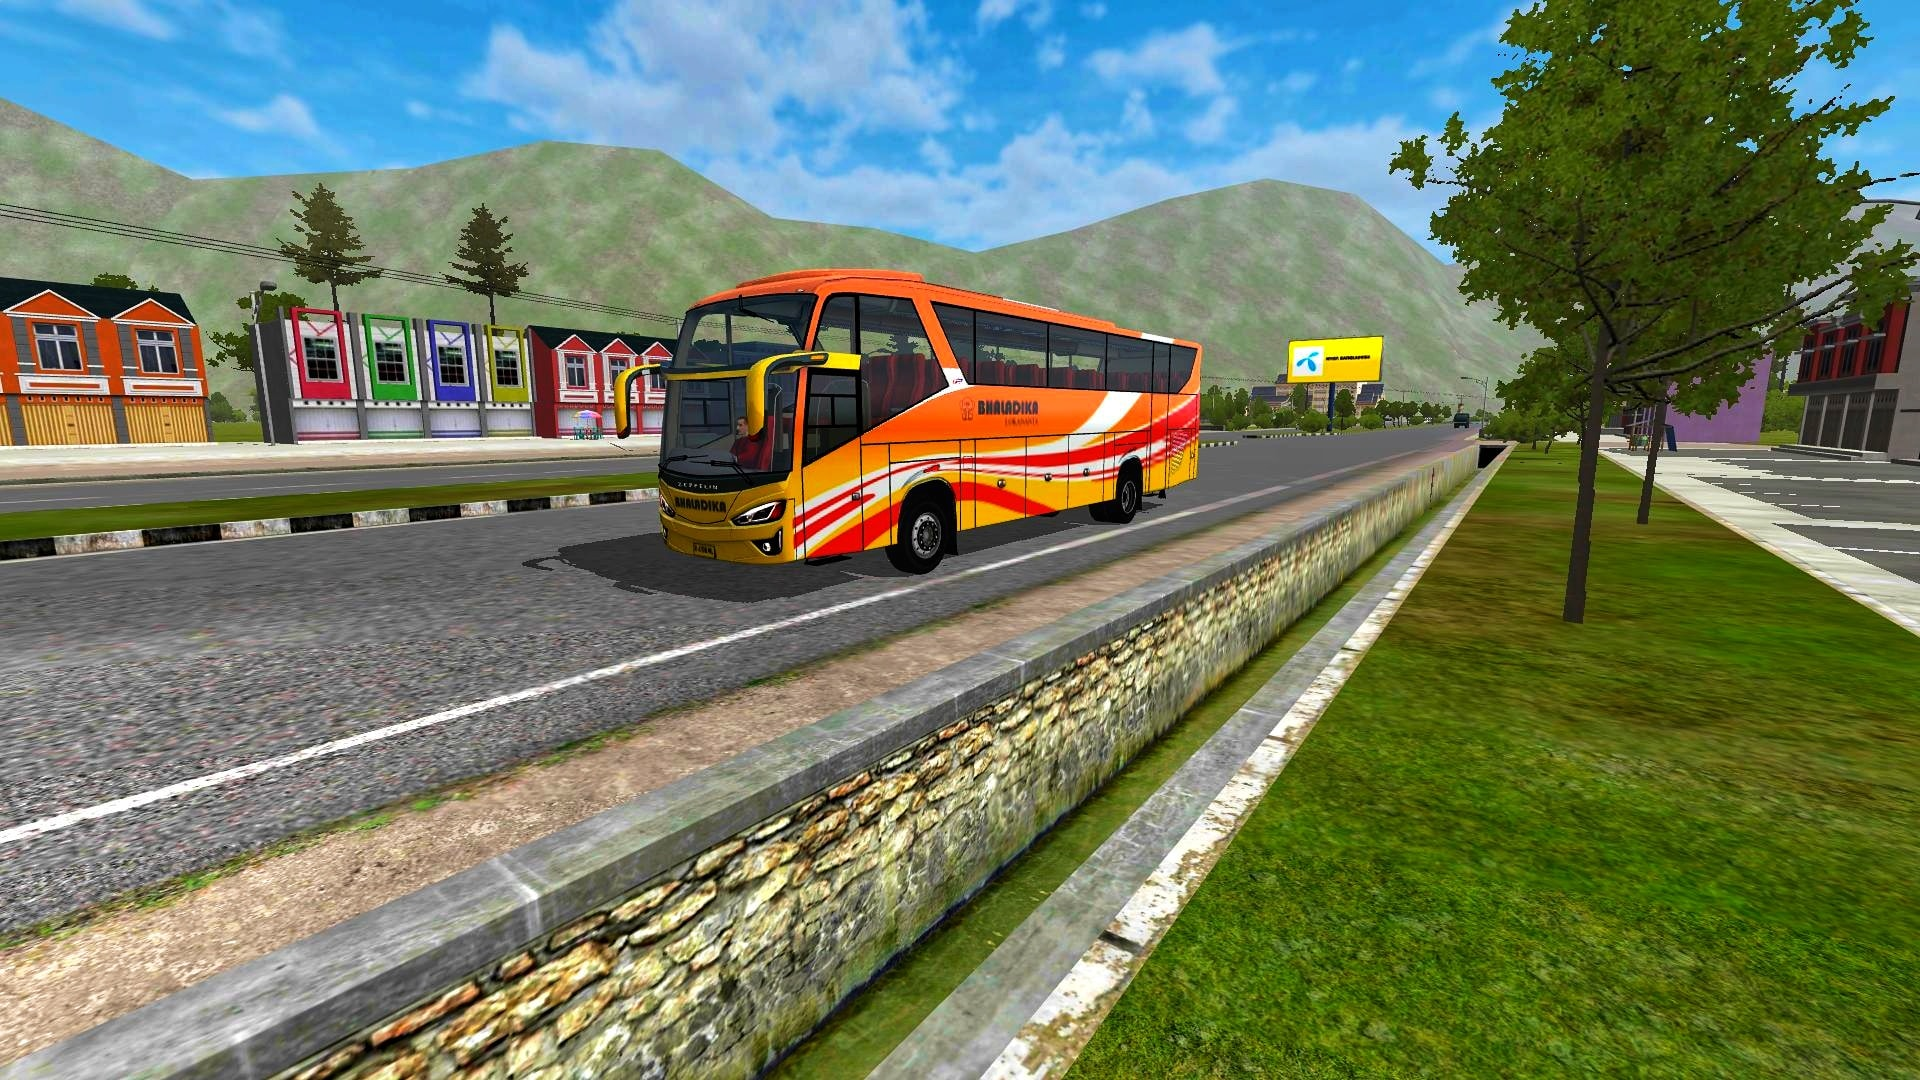 Download Zeeppelin G3 Bus Mod for BUSSID, , Mod